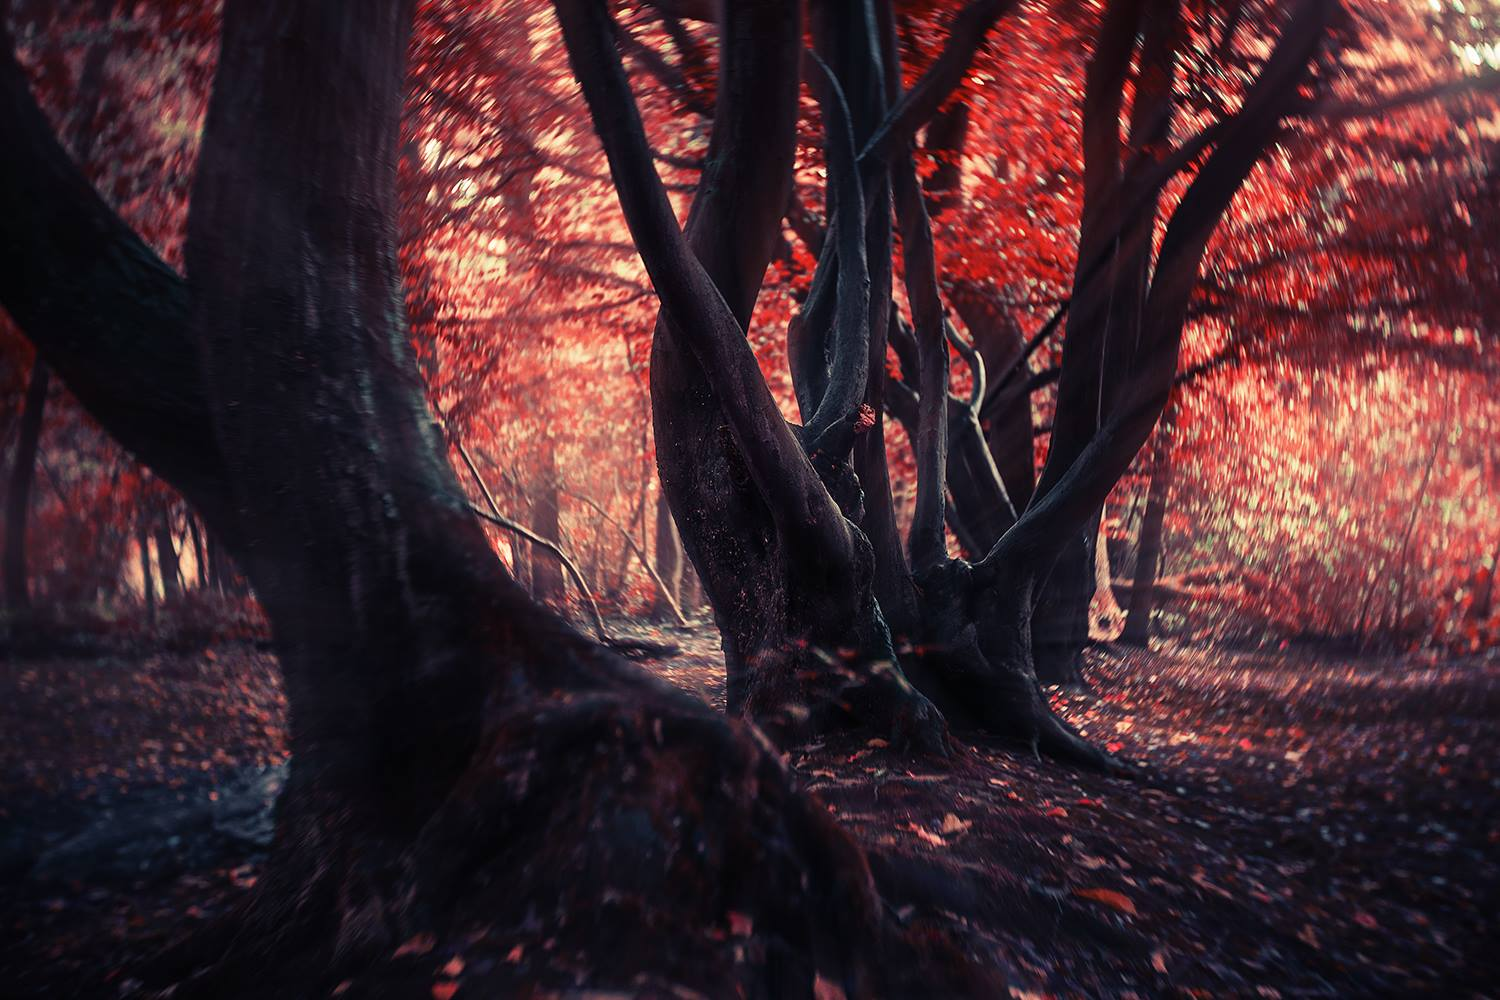 Trees in the forest with fall leaves red leaves twisted trunks featured photos